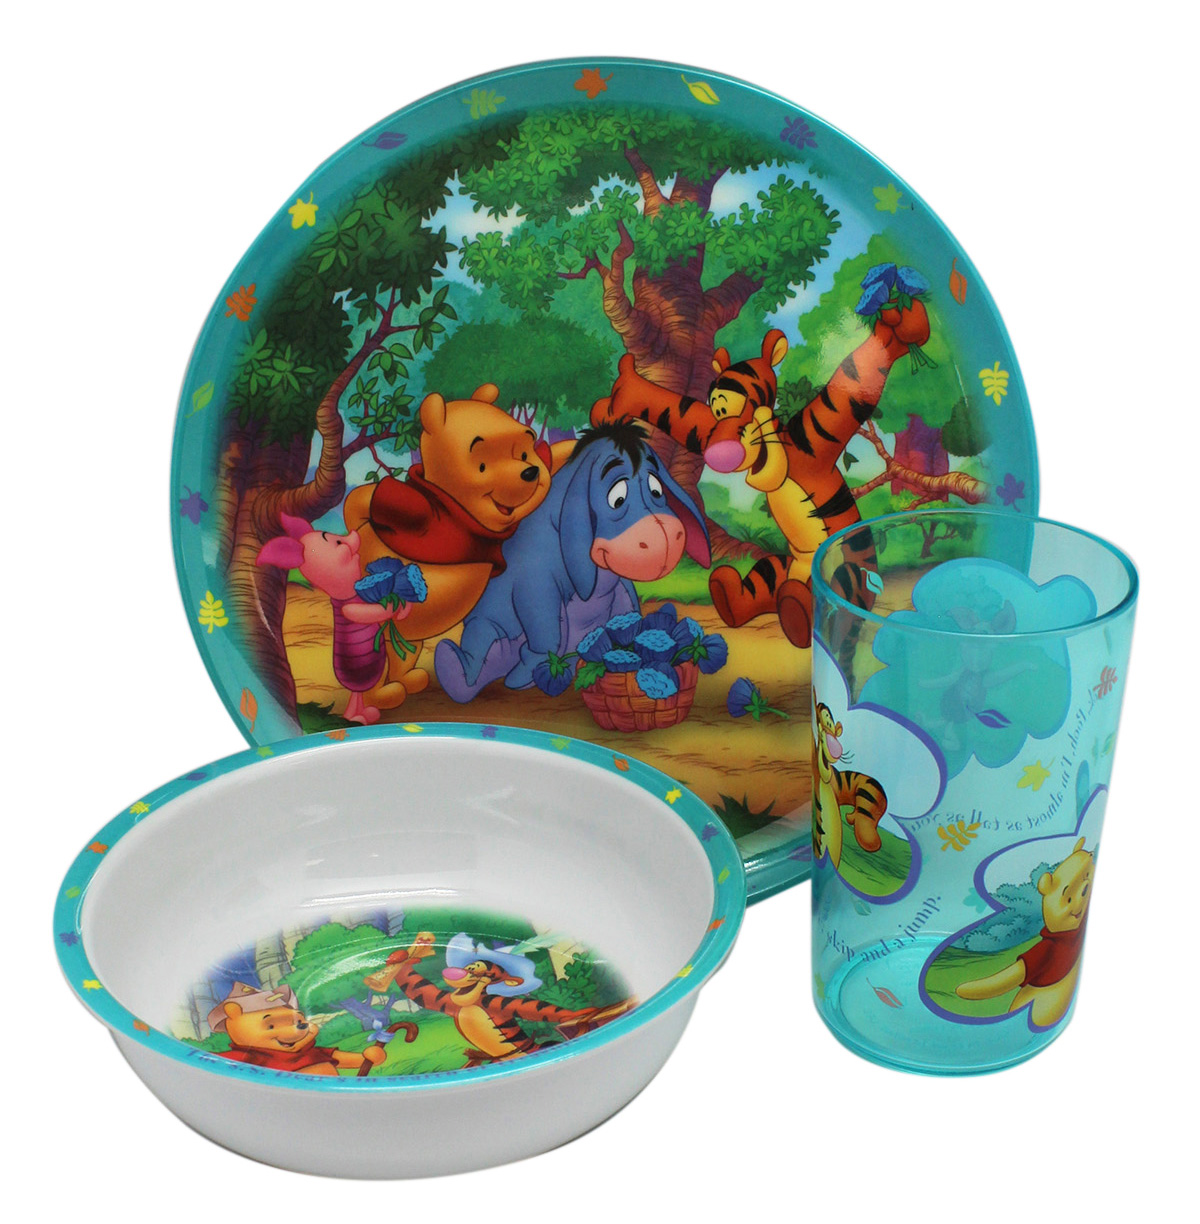 Disney's Winnie the Pooh Turquoise Color Accented Cup Bowl and Plate Set by Disney